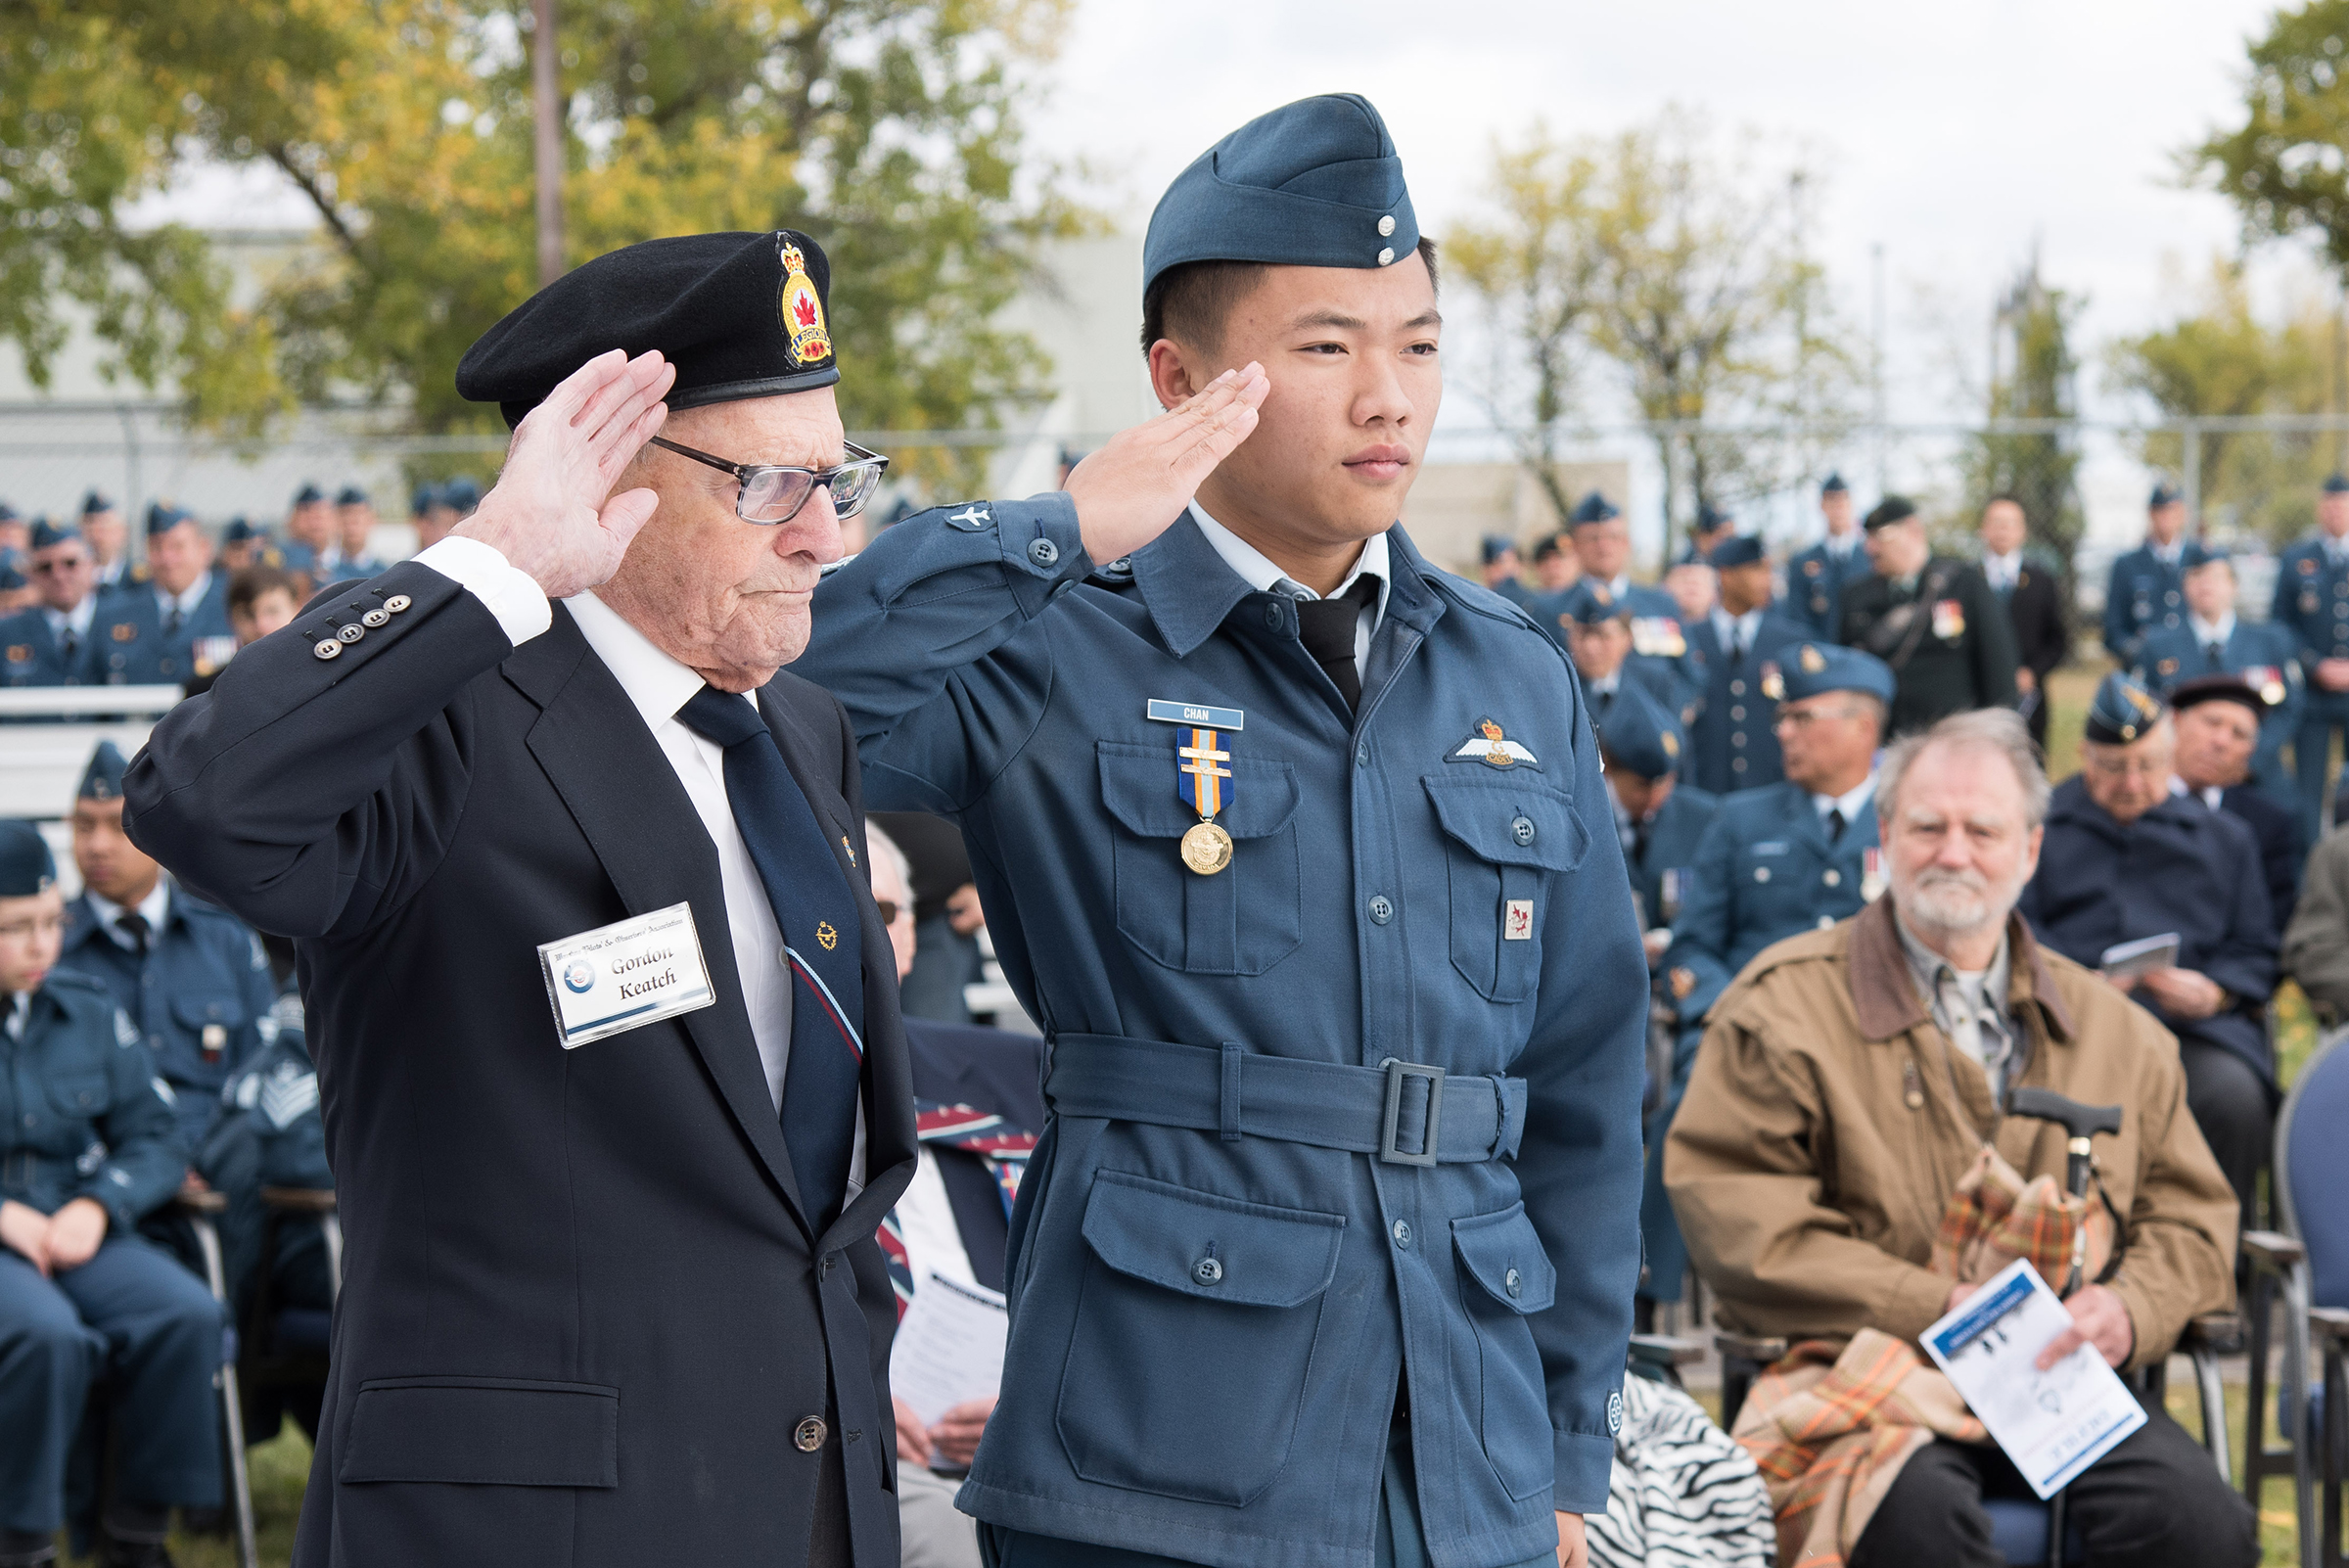 An elderly man wearing a jacket, tie and beret and a young man wearing a military uniform stand side by side and salute.